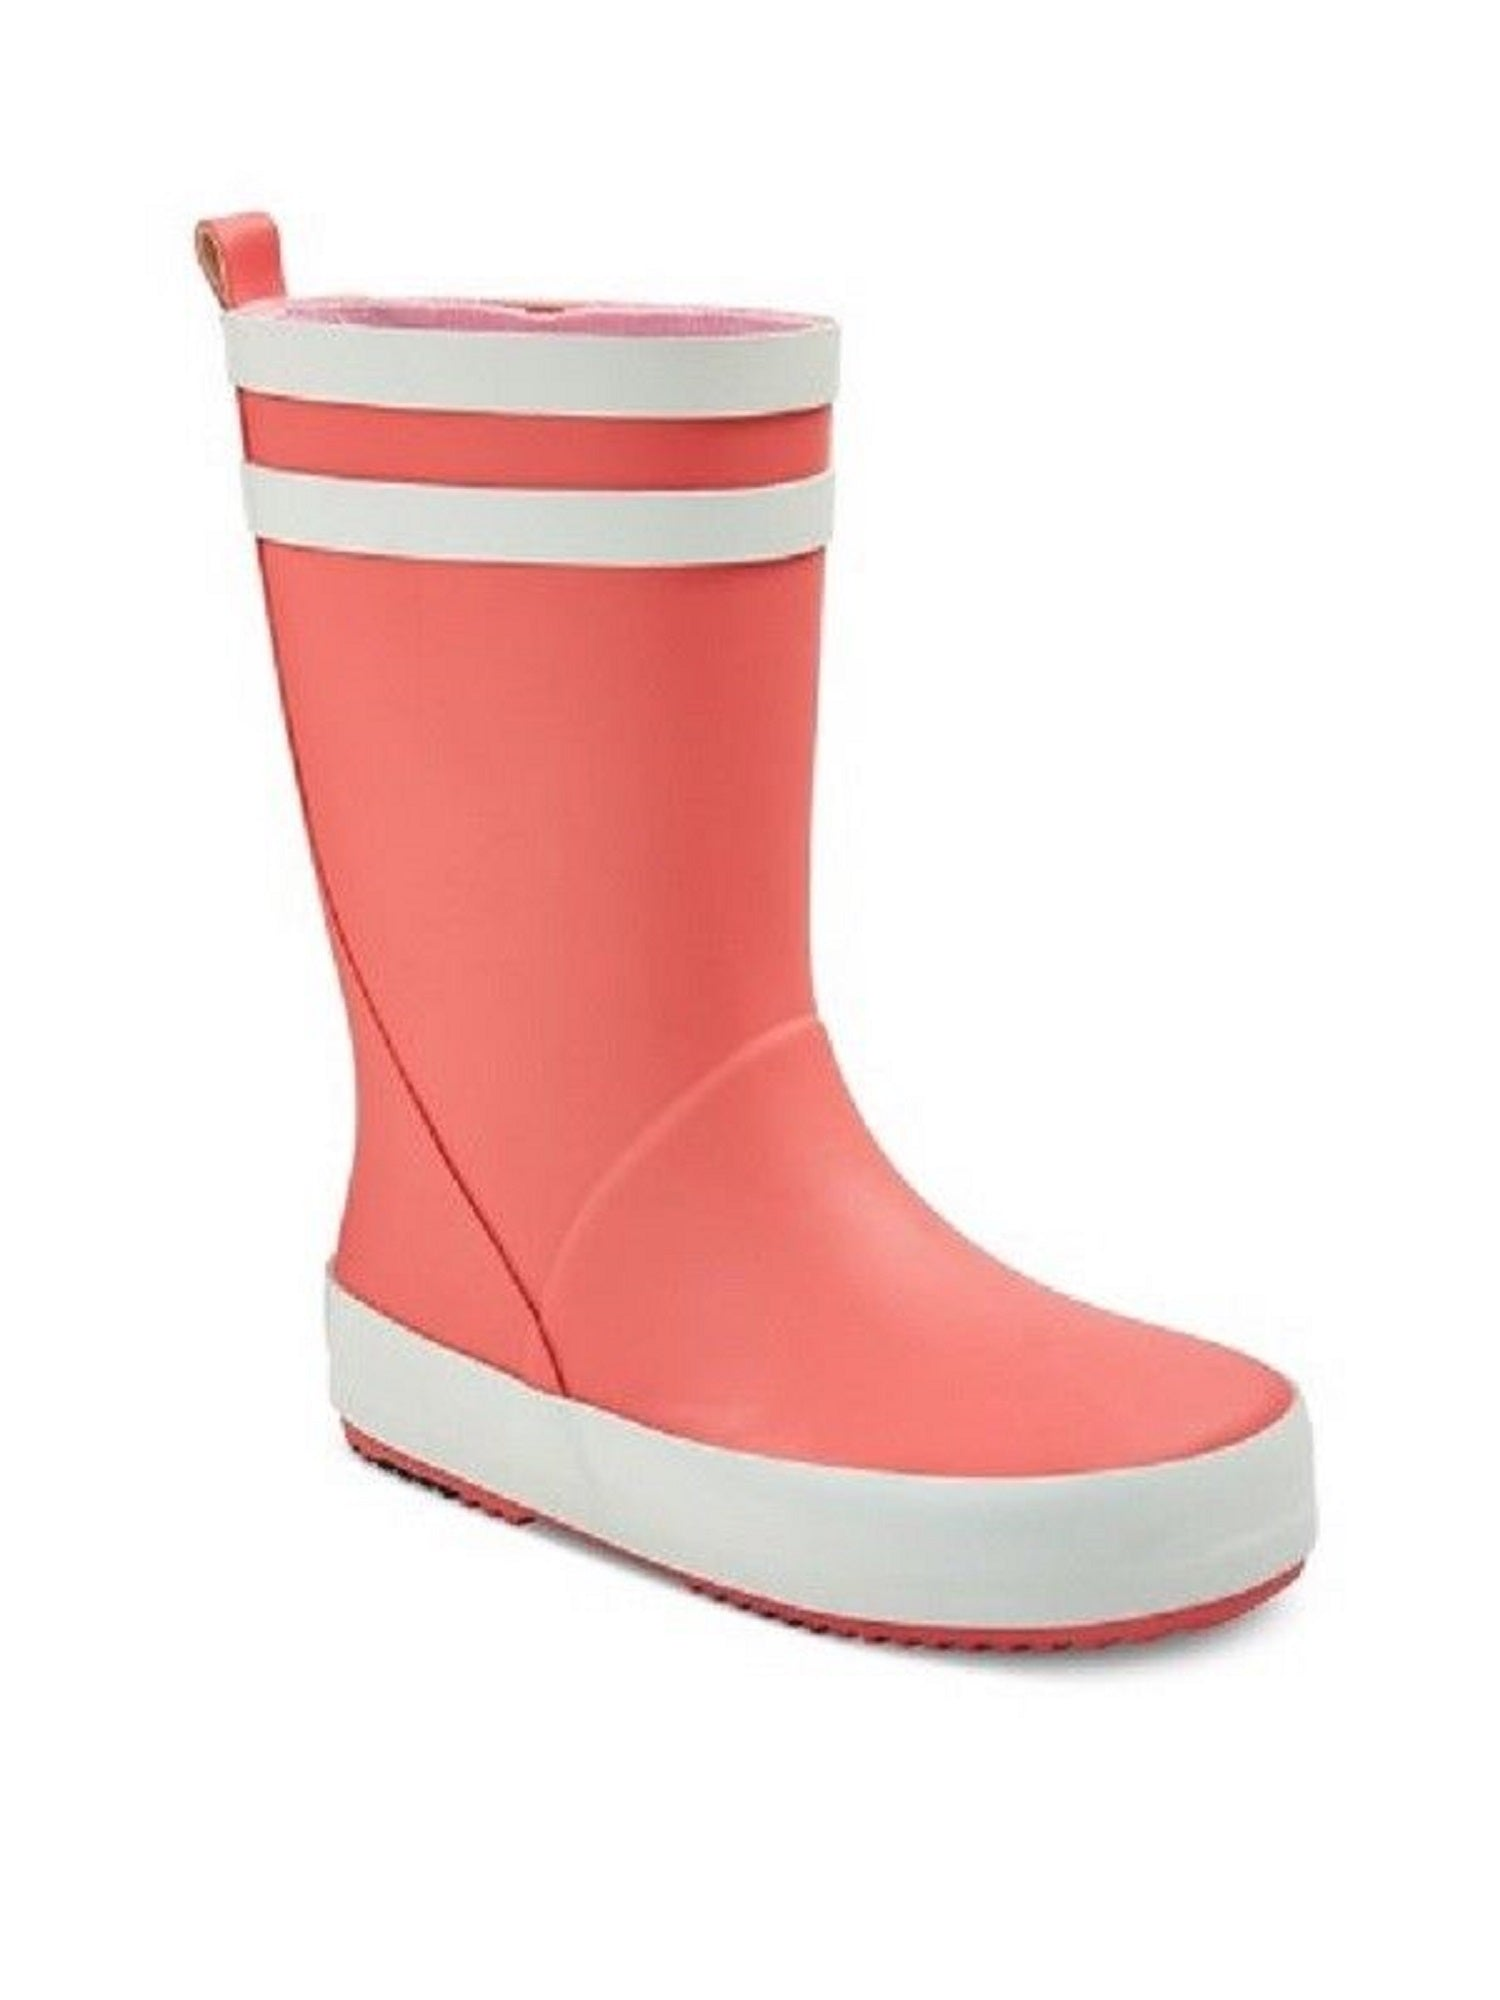 Cat & Jack Girls' Pink Rubber Garden Boot, Medium (7/8)